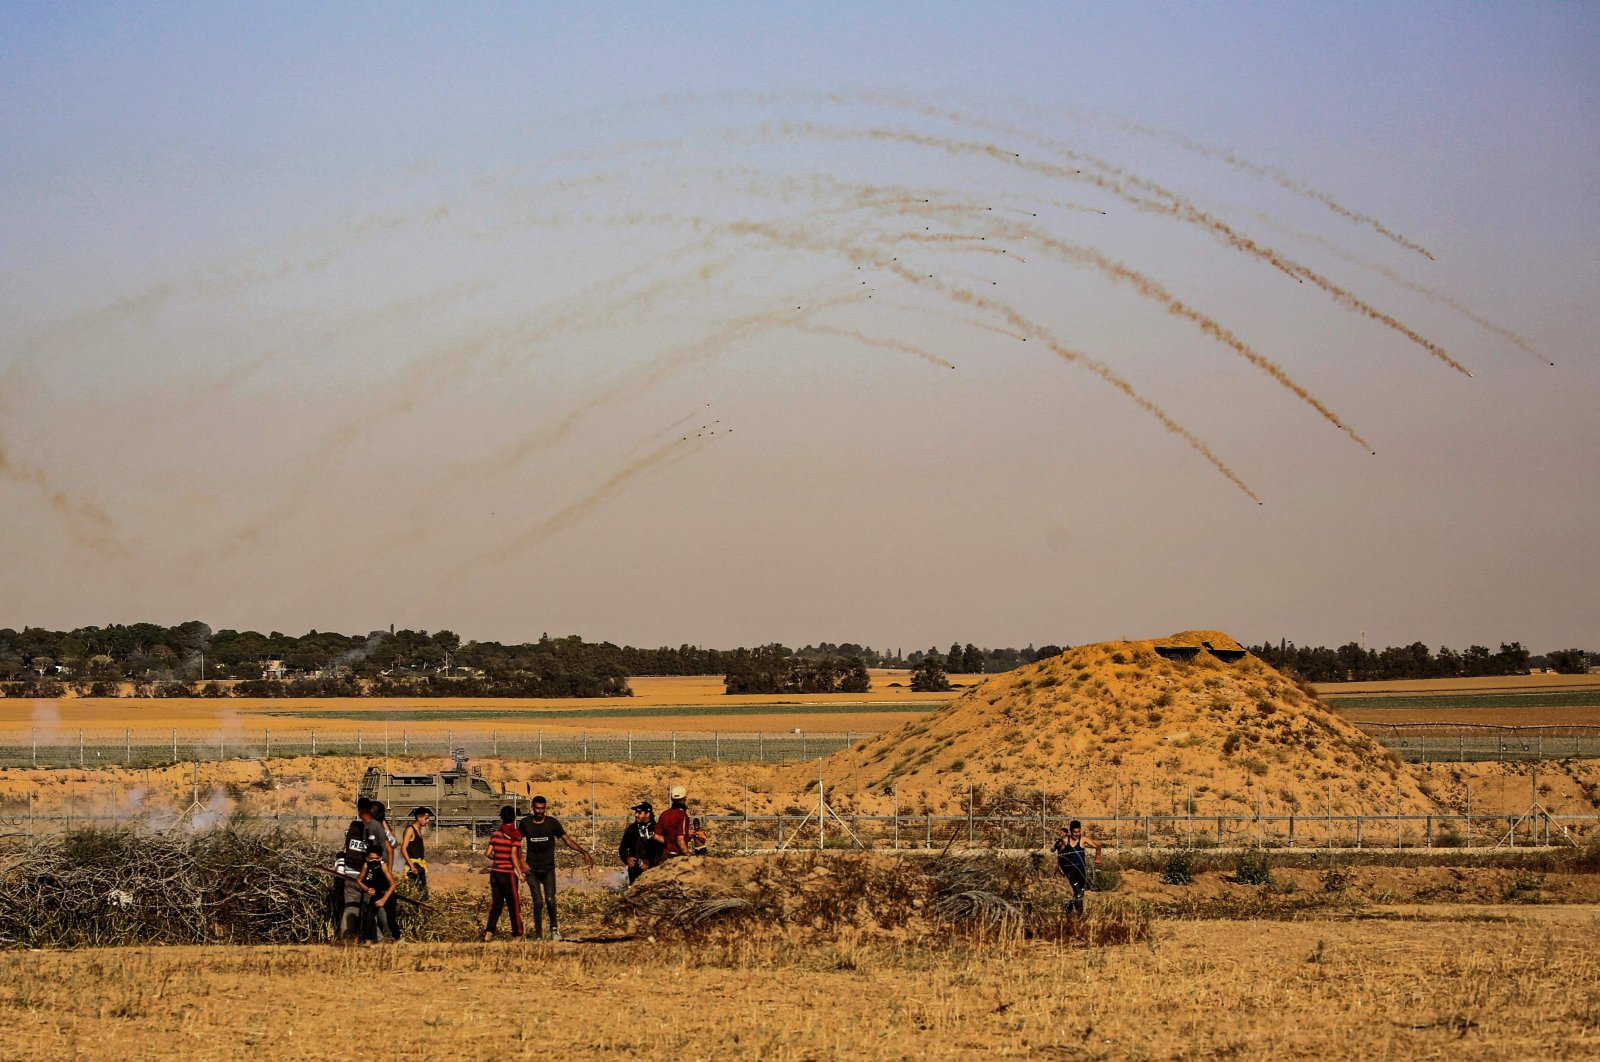 Israeli security forces fire tear gas at Palestinian protesters near the Israel-Gaza border, east of the town of Khan Yunis in the southern Gaza Strip, May 8, 2021. (AFP File Photo)